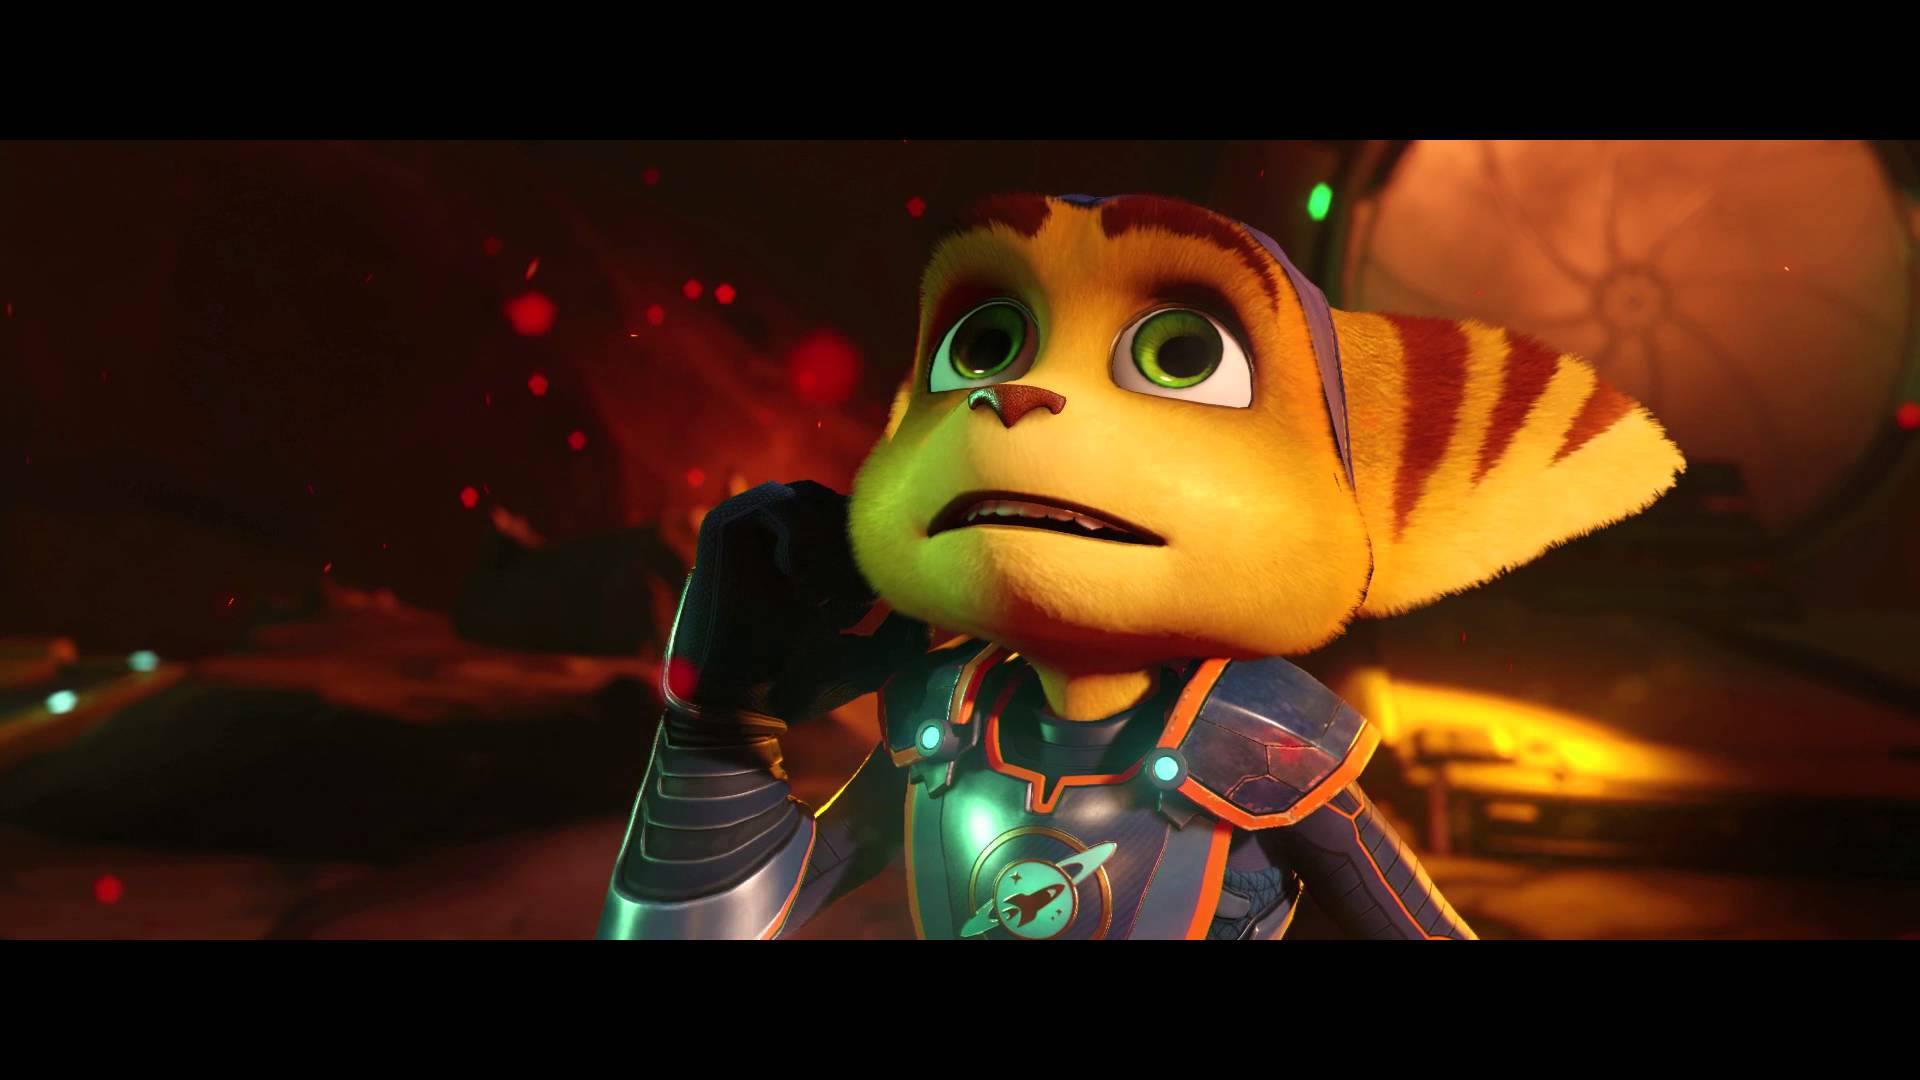 Ratchet & Clank | Captain Qwark Story Trailer